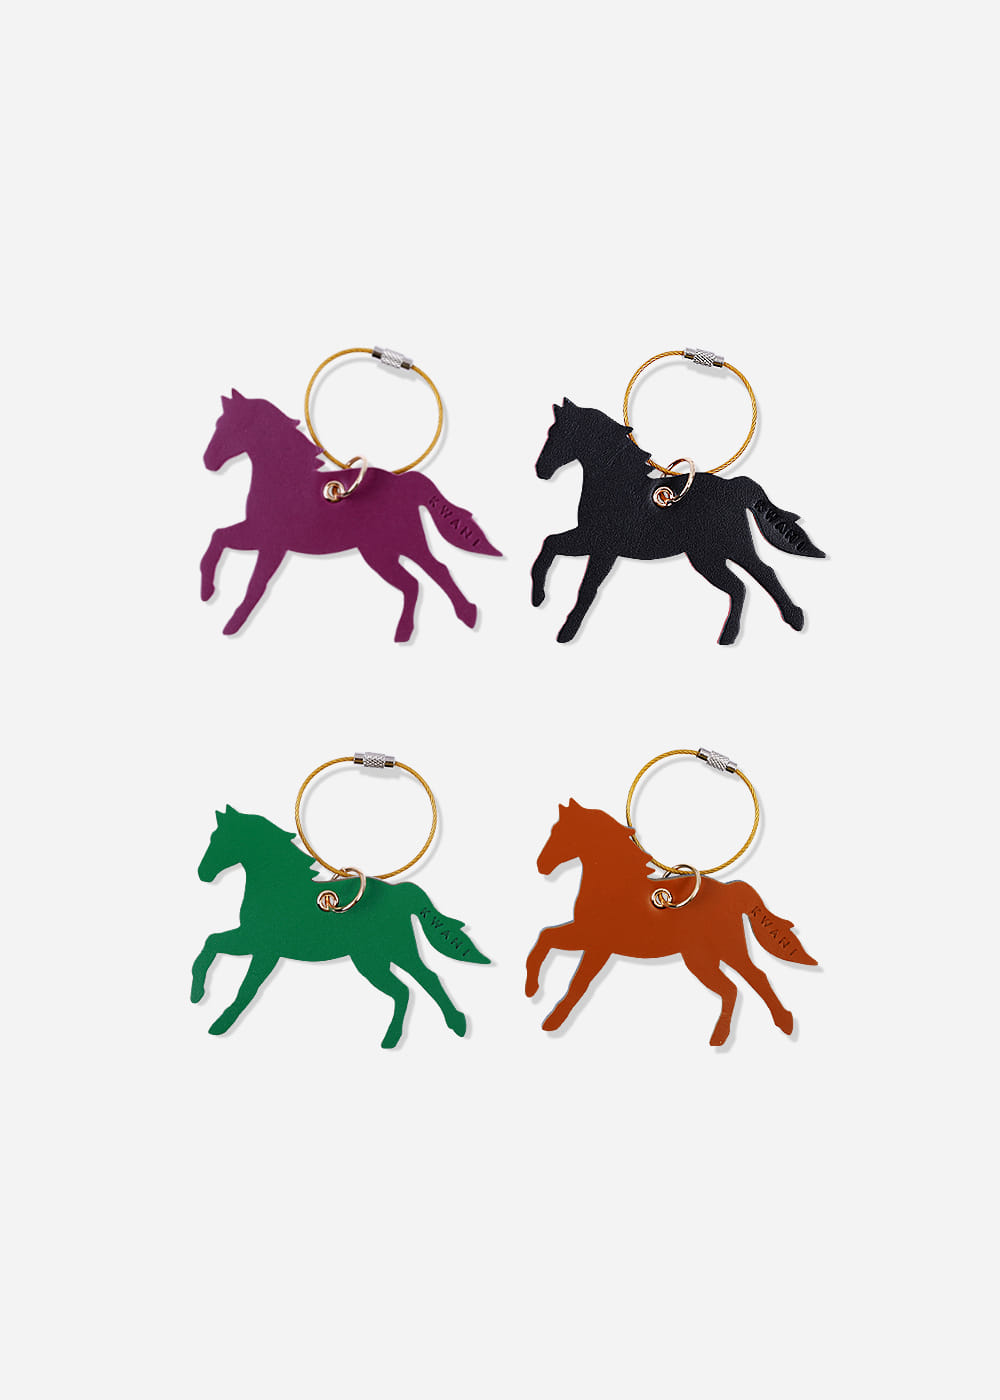 My Special Bag Charm Horse